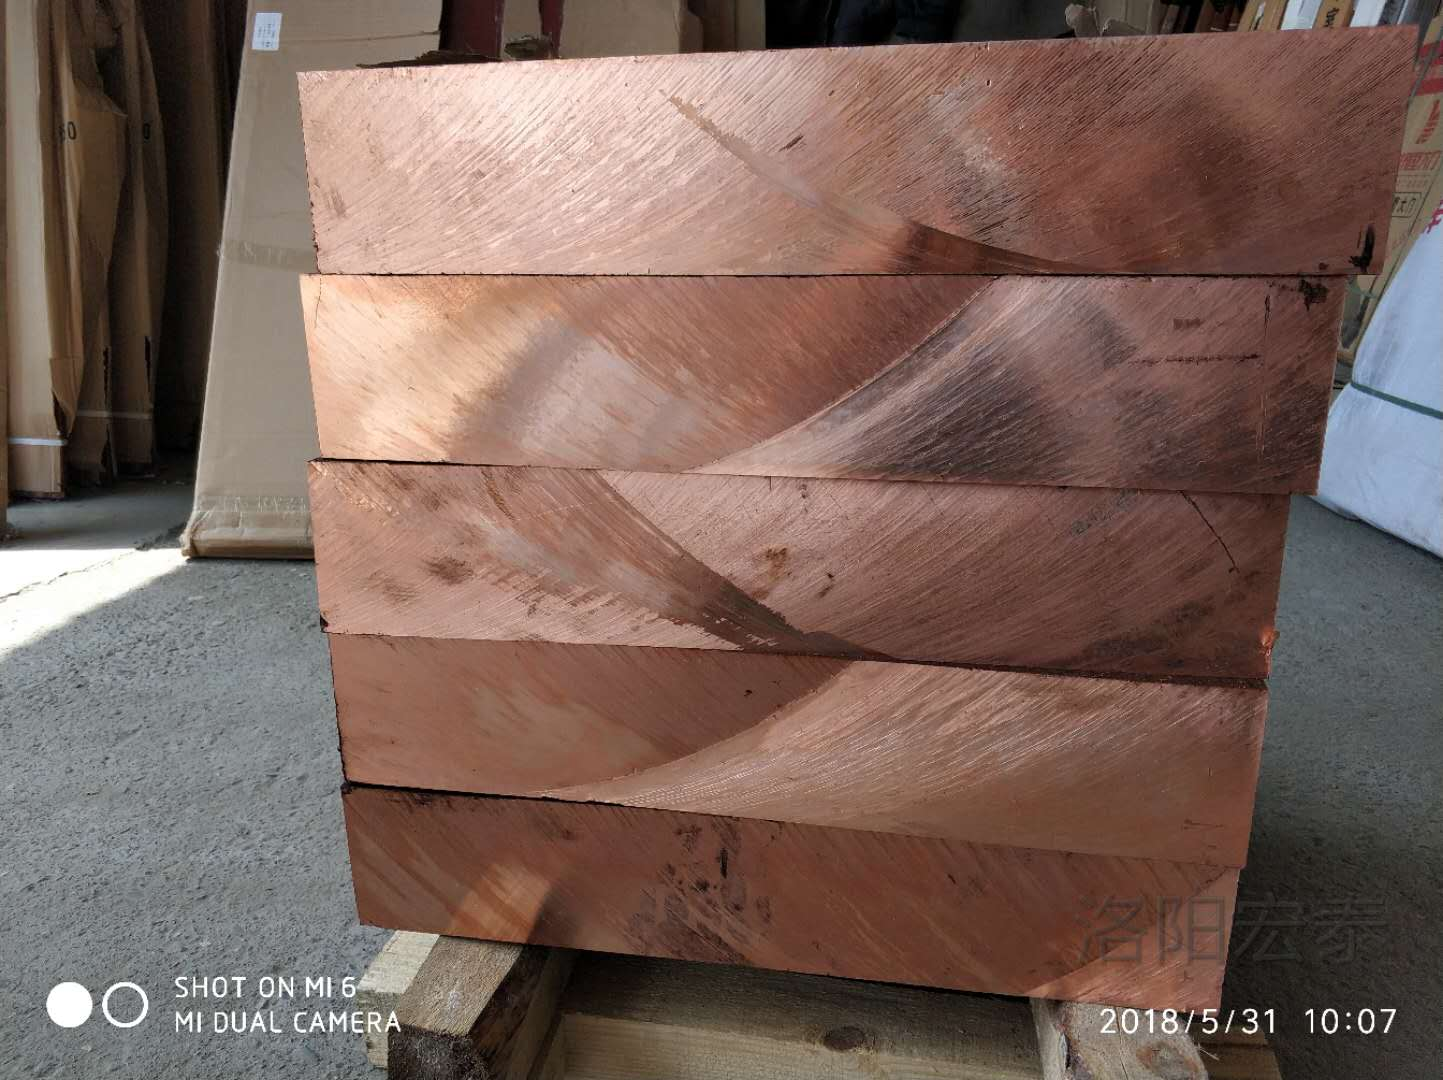 copper alloy sheets(plates),copper nickel sheets(plates),cupronickel sheets(plates)